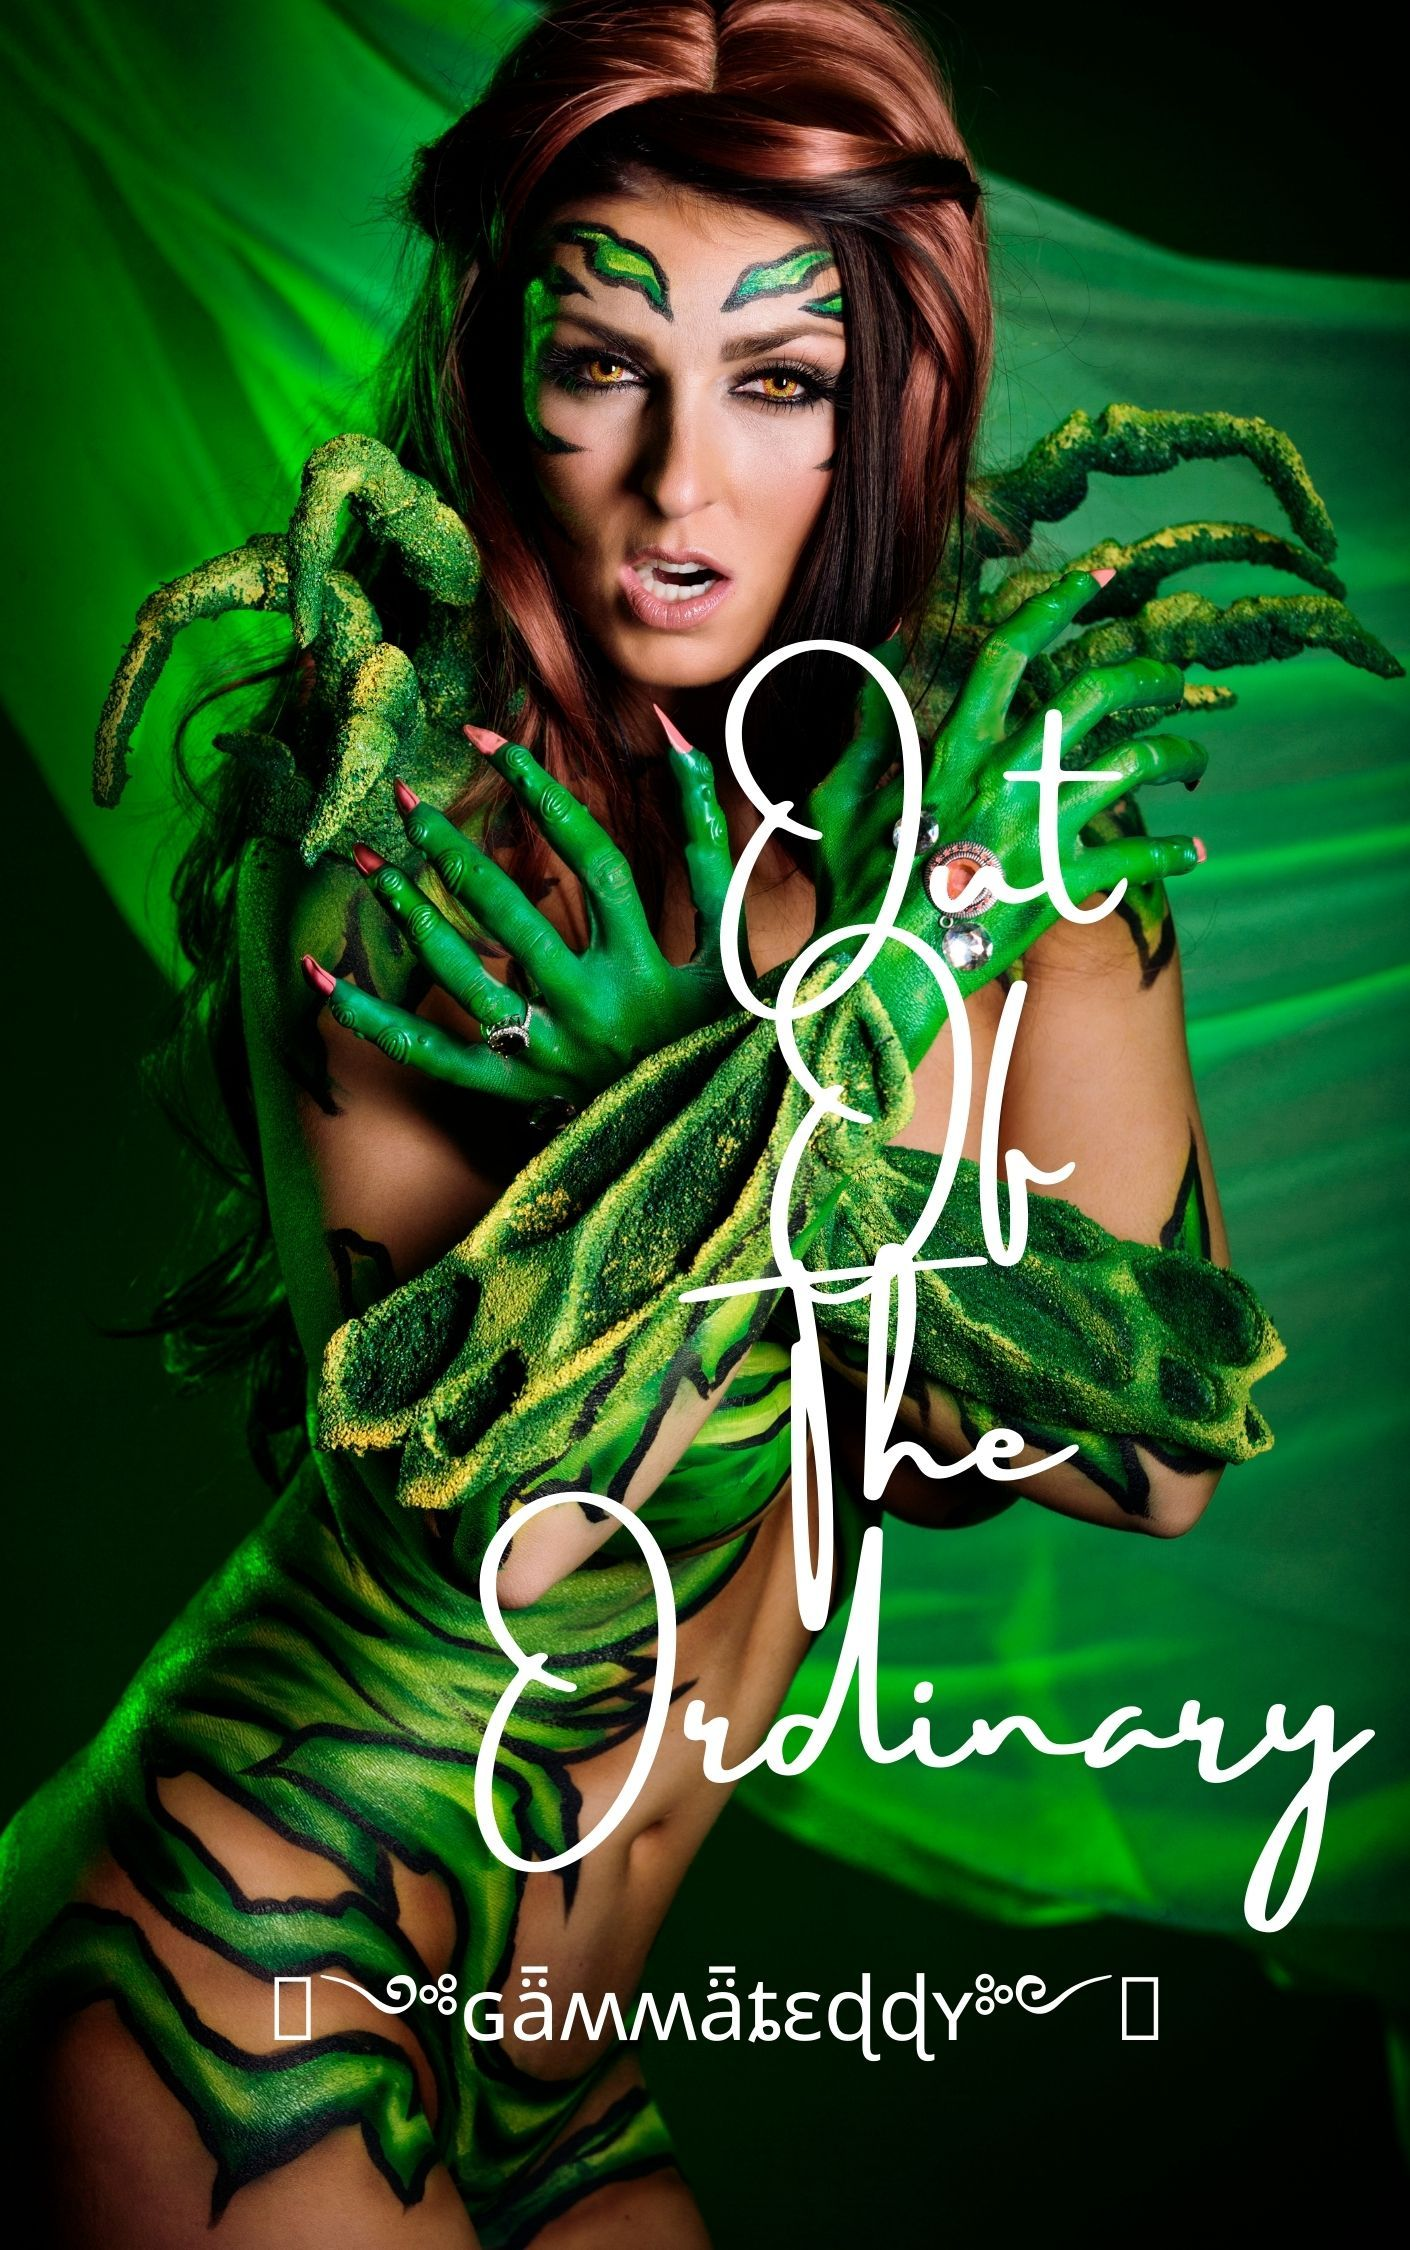 Out Of The Ordinary's Book Image